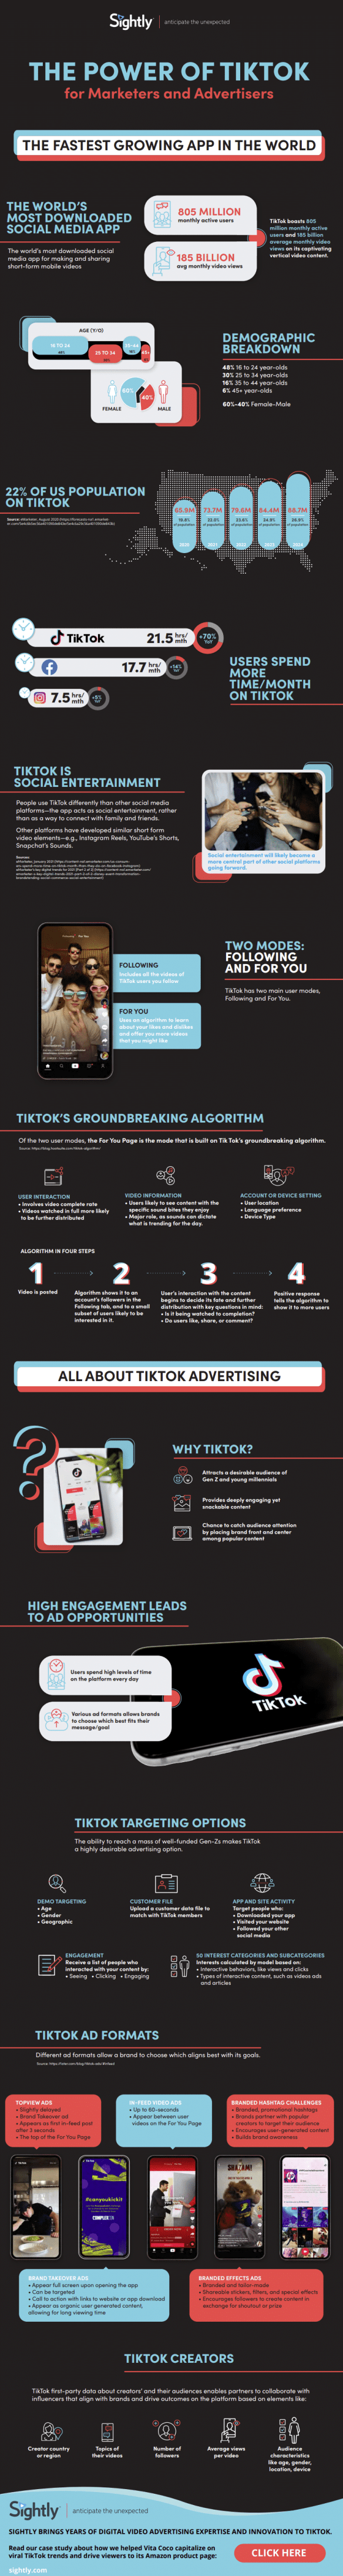 TikTok marketing should be part of your inbound strategy.